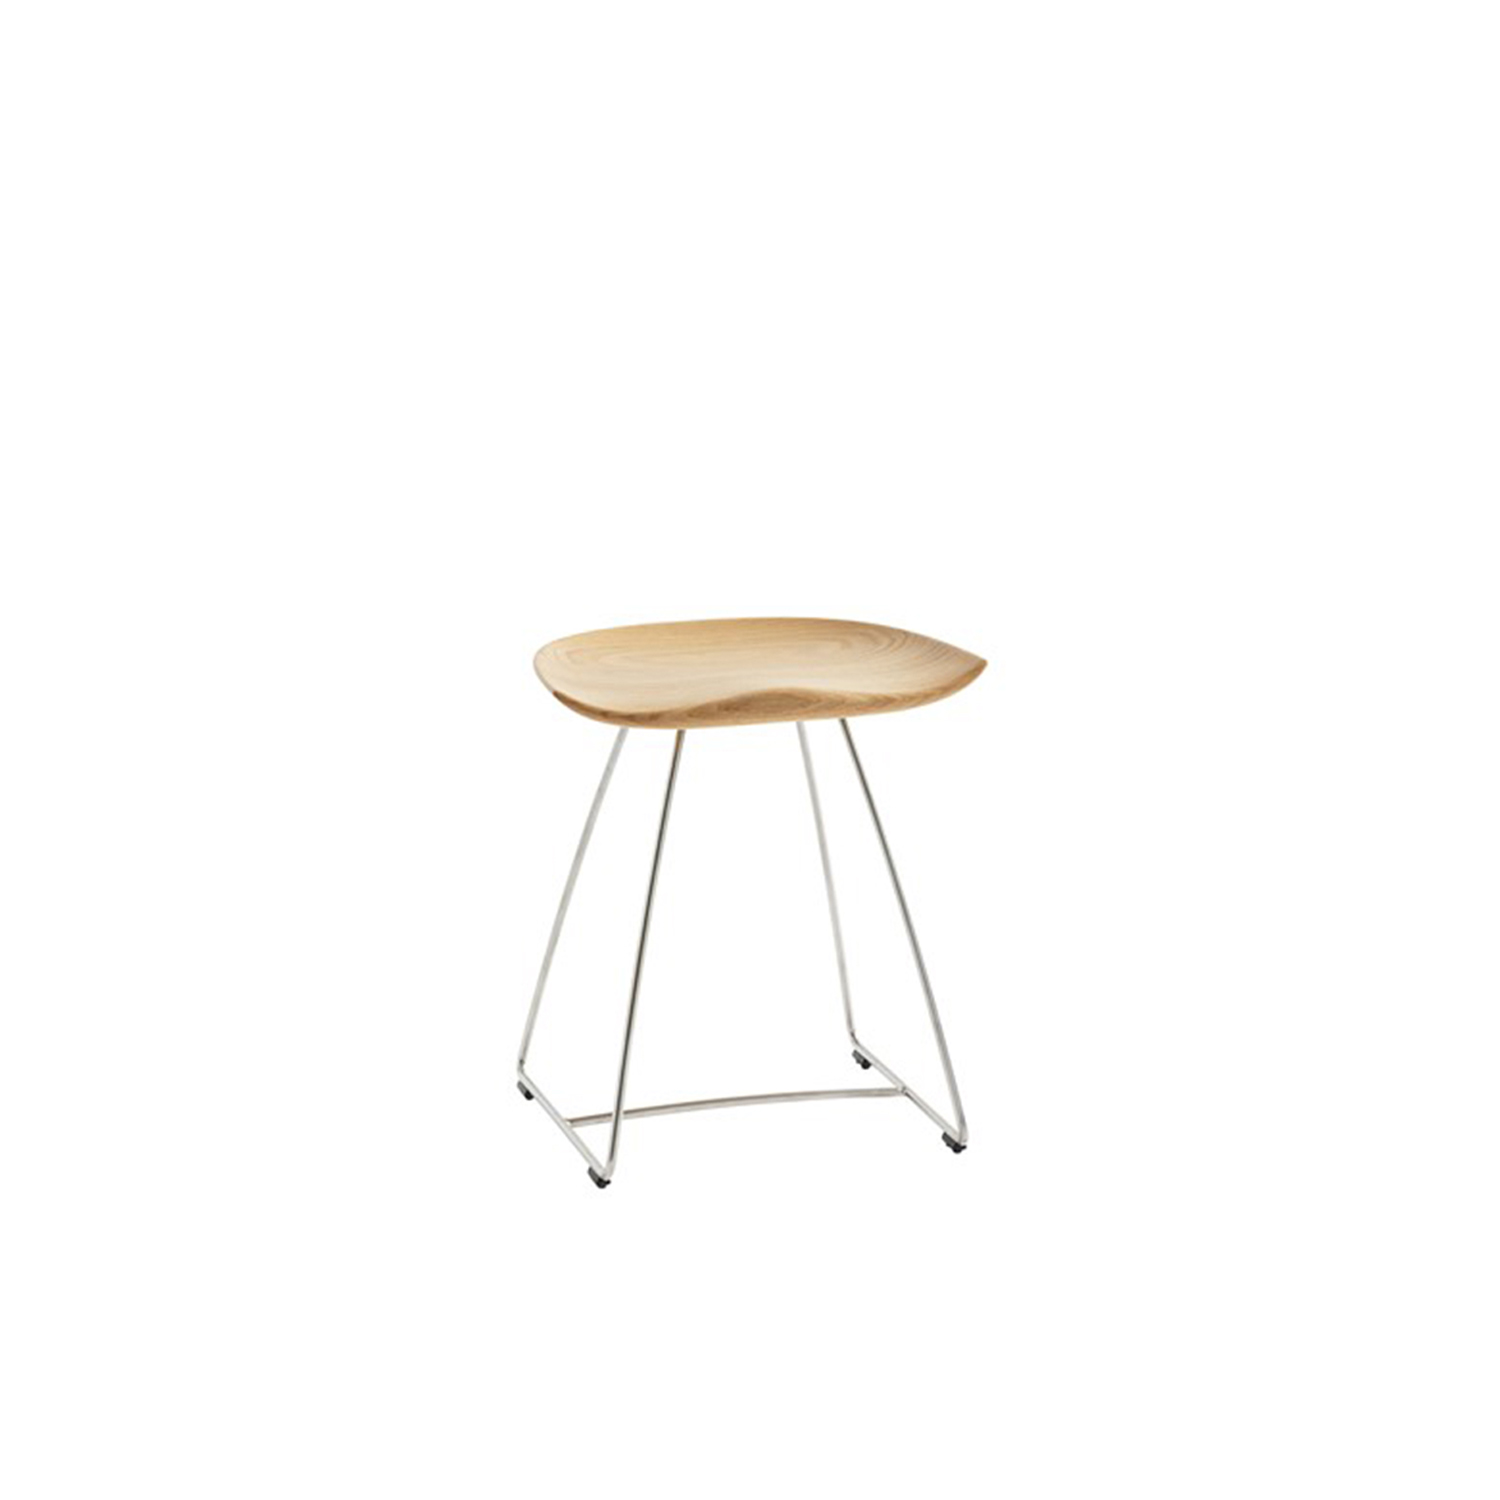 Kaz Stool - The inspiration for Kaz came from a tractor seat, here refined in the form of a stool that combines a contemporary look with timeless functionality. A wooden seat on an underframe of sturdy steel rod gives the stool a minimalistic expression that draws further attention to the wooden seat.  Kaz is manufactured from a single piece of solid wood – oak, ash or finished in standard stains on ash or white-glazed oak or ash. The metal frame has a matt chrome finish, and the runners are fitted with floor protectors. The stool comes in a choice of three heights.  Please enquire for more information. | Matter of Stuff